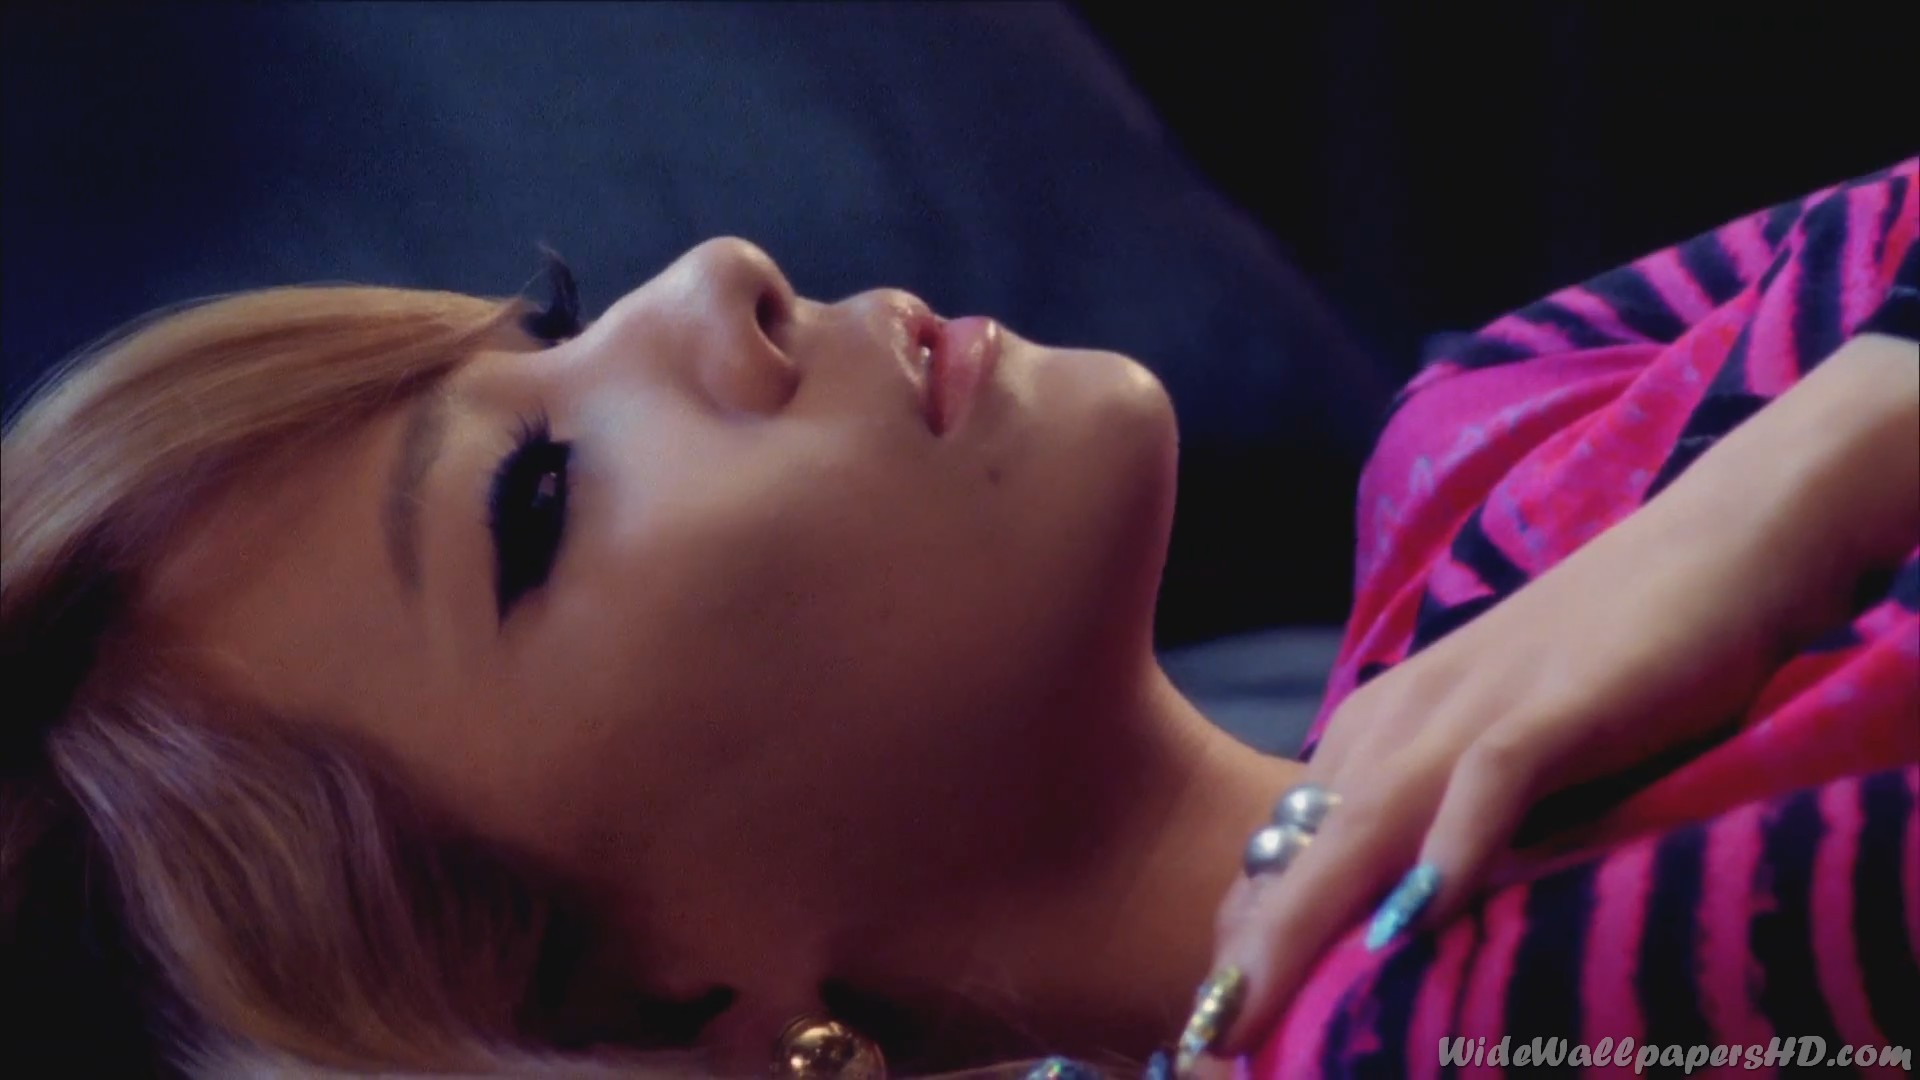 Cl Lottning Hd: CL-On-Bed-Close-Up-2NE1-K-Pop-Images-and